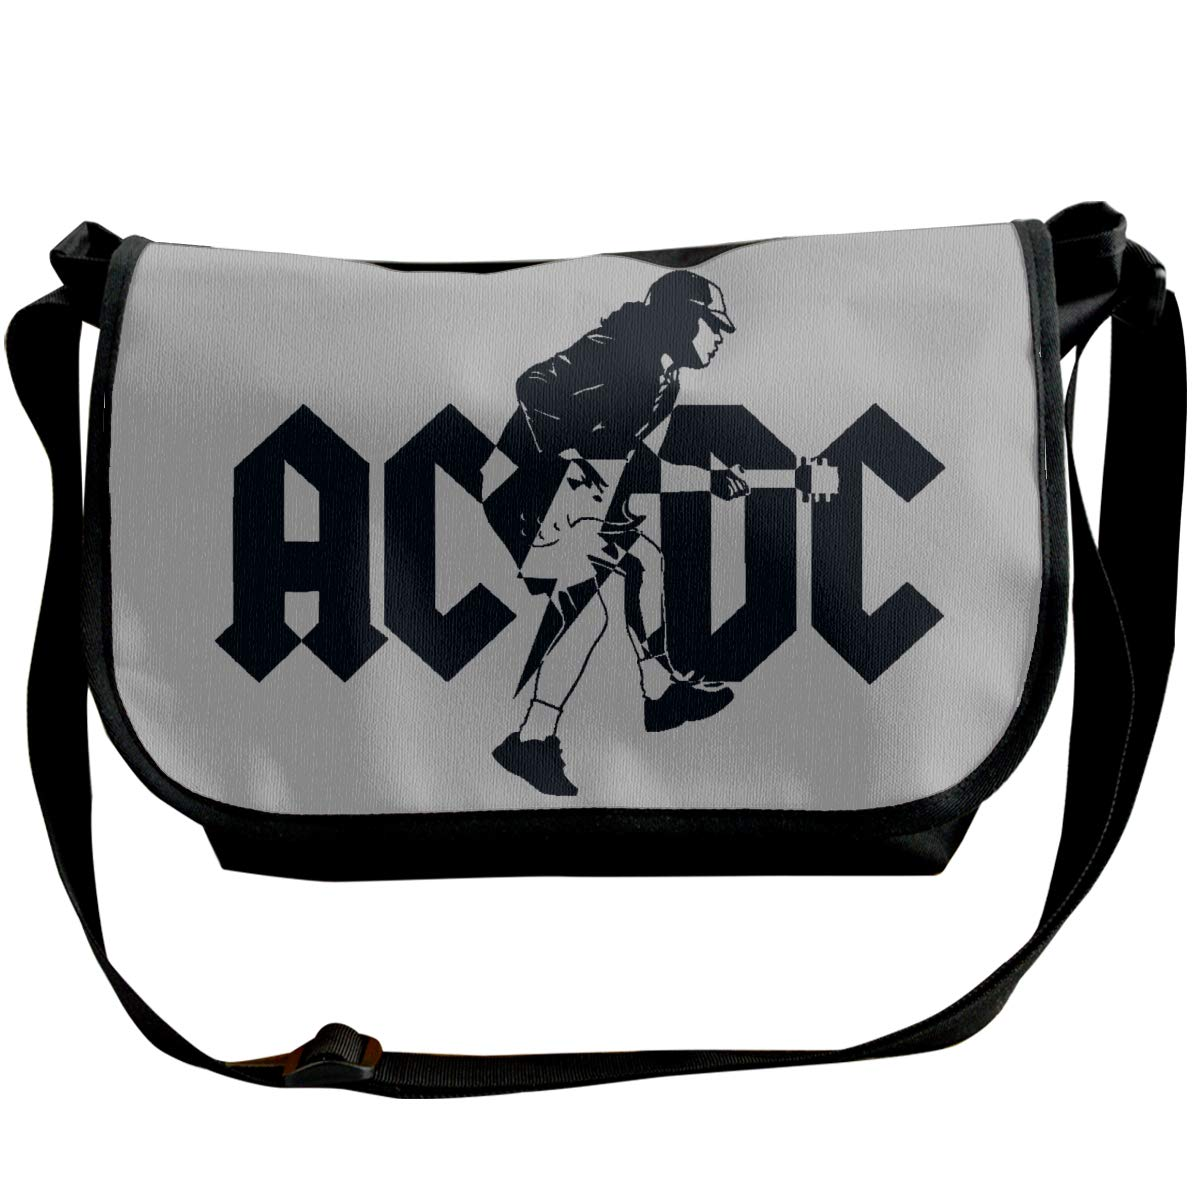 Shoulder Bag For All-Purpose Use Classic ACDC Messenger Bag